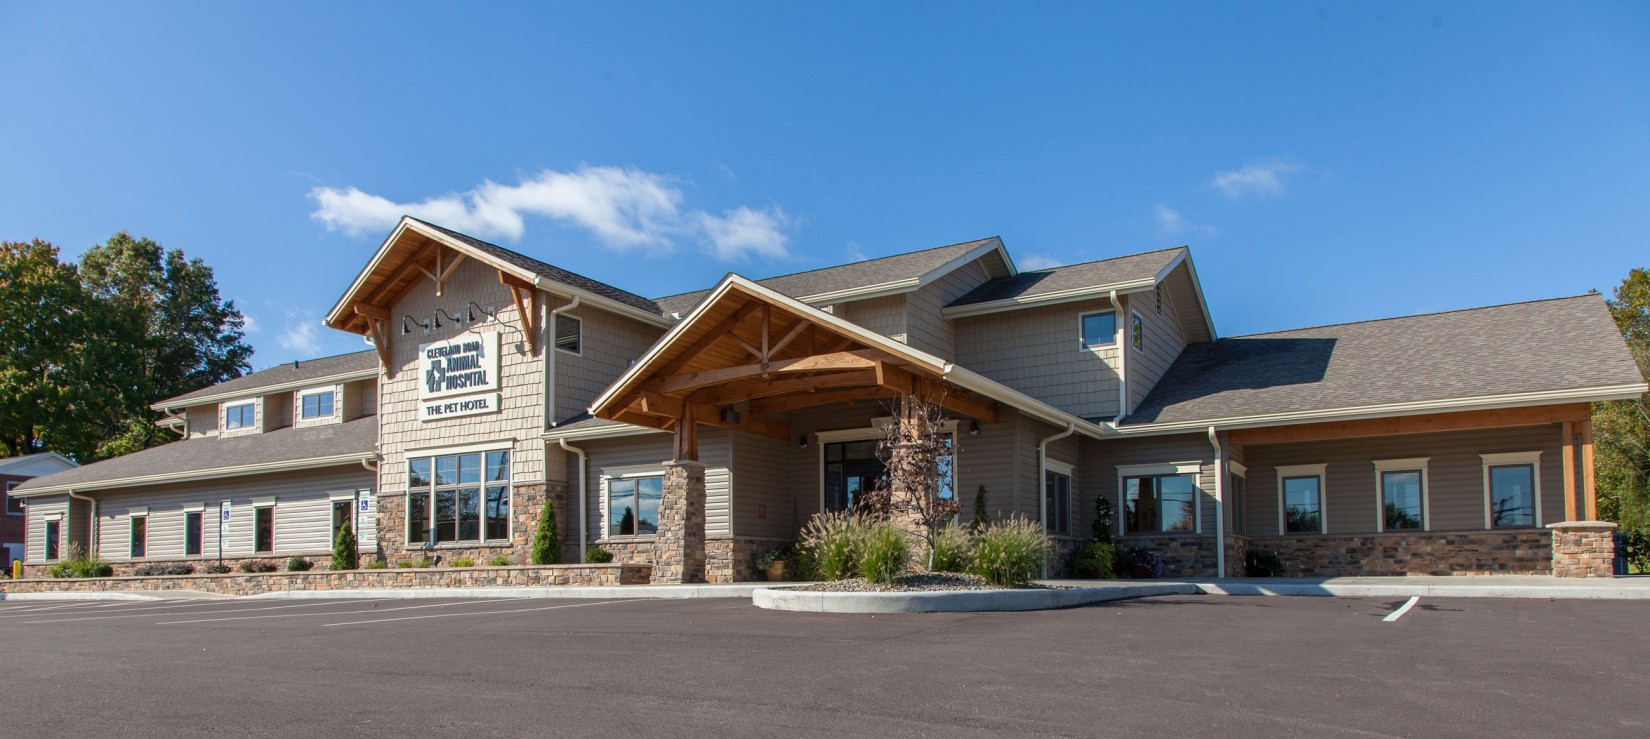 Cleveland Road Animal Hospital | Wooster Ohio Veterinarian